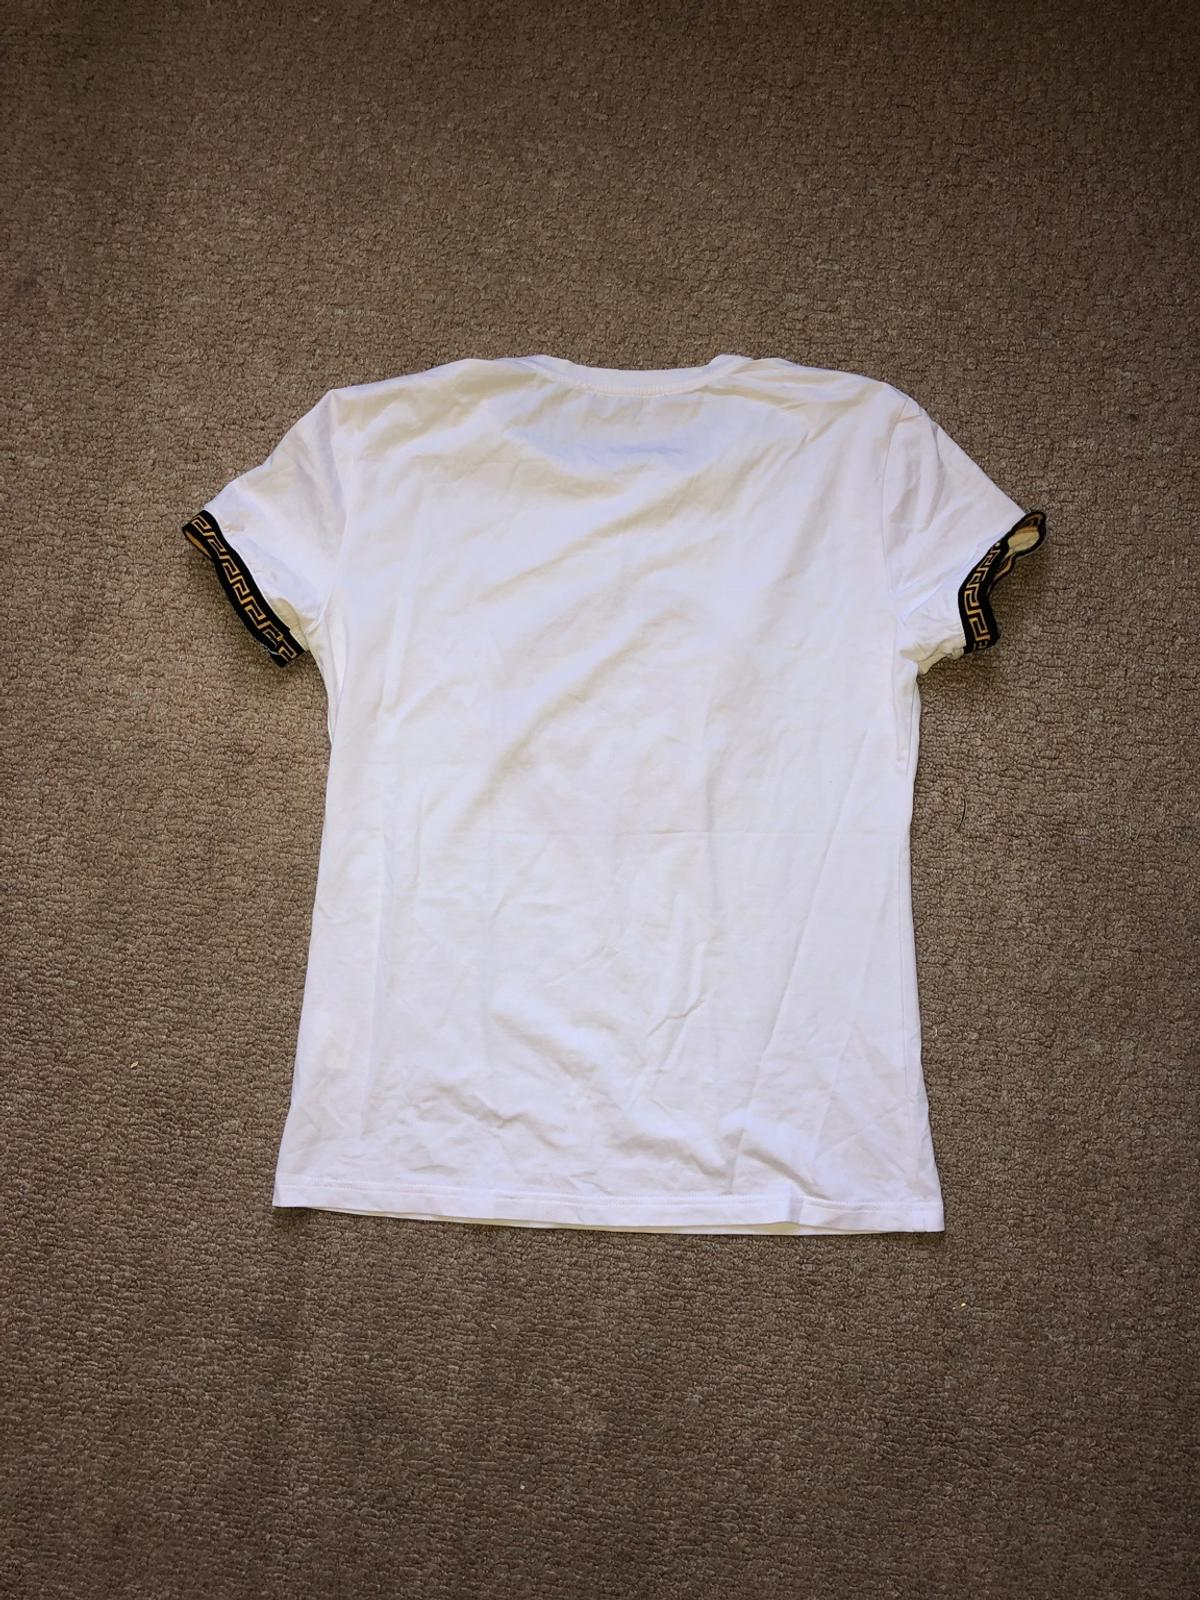 Selling unisex t shirt good condition open to offer no stupid offers